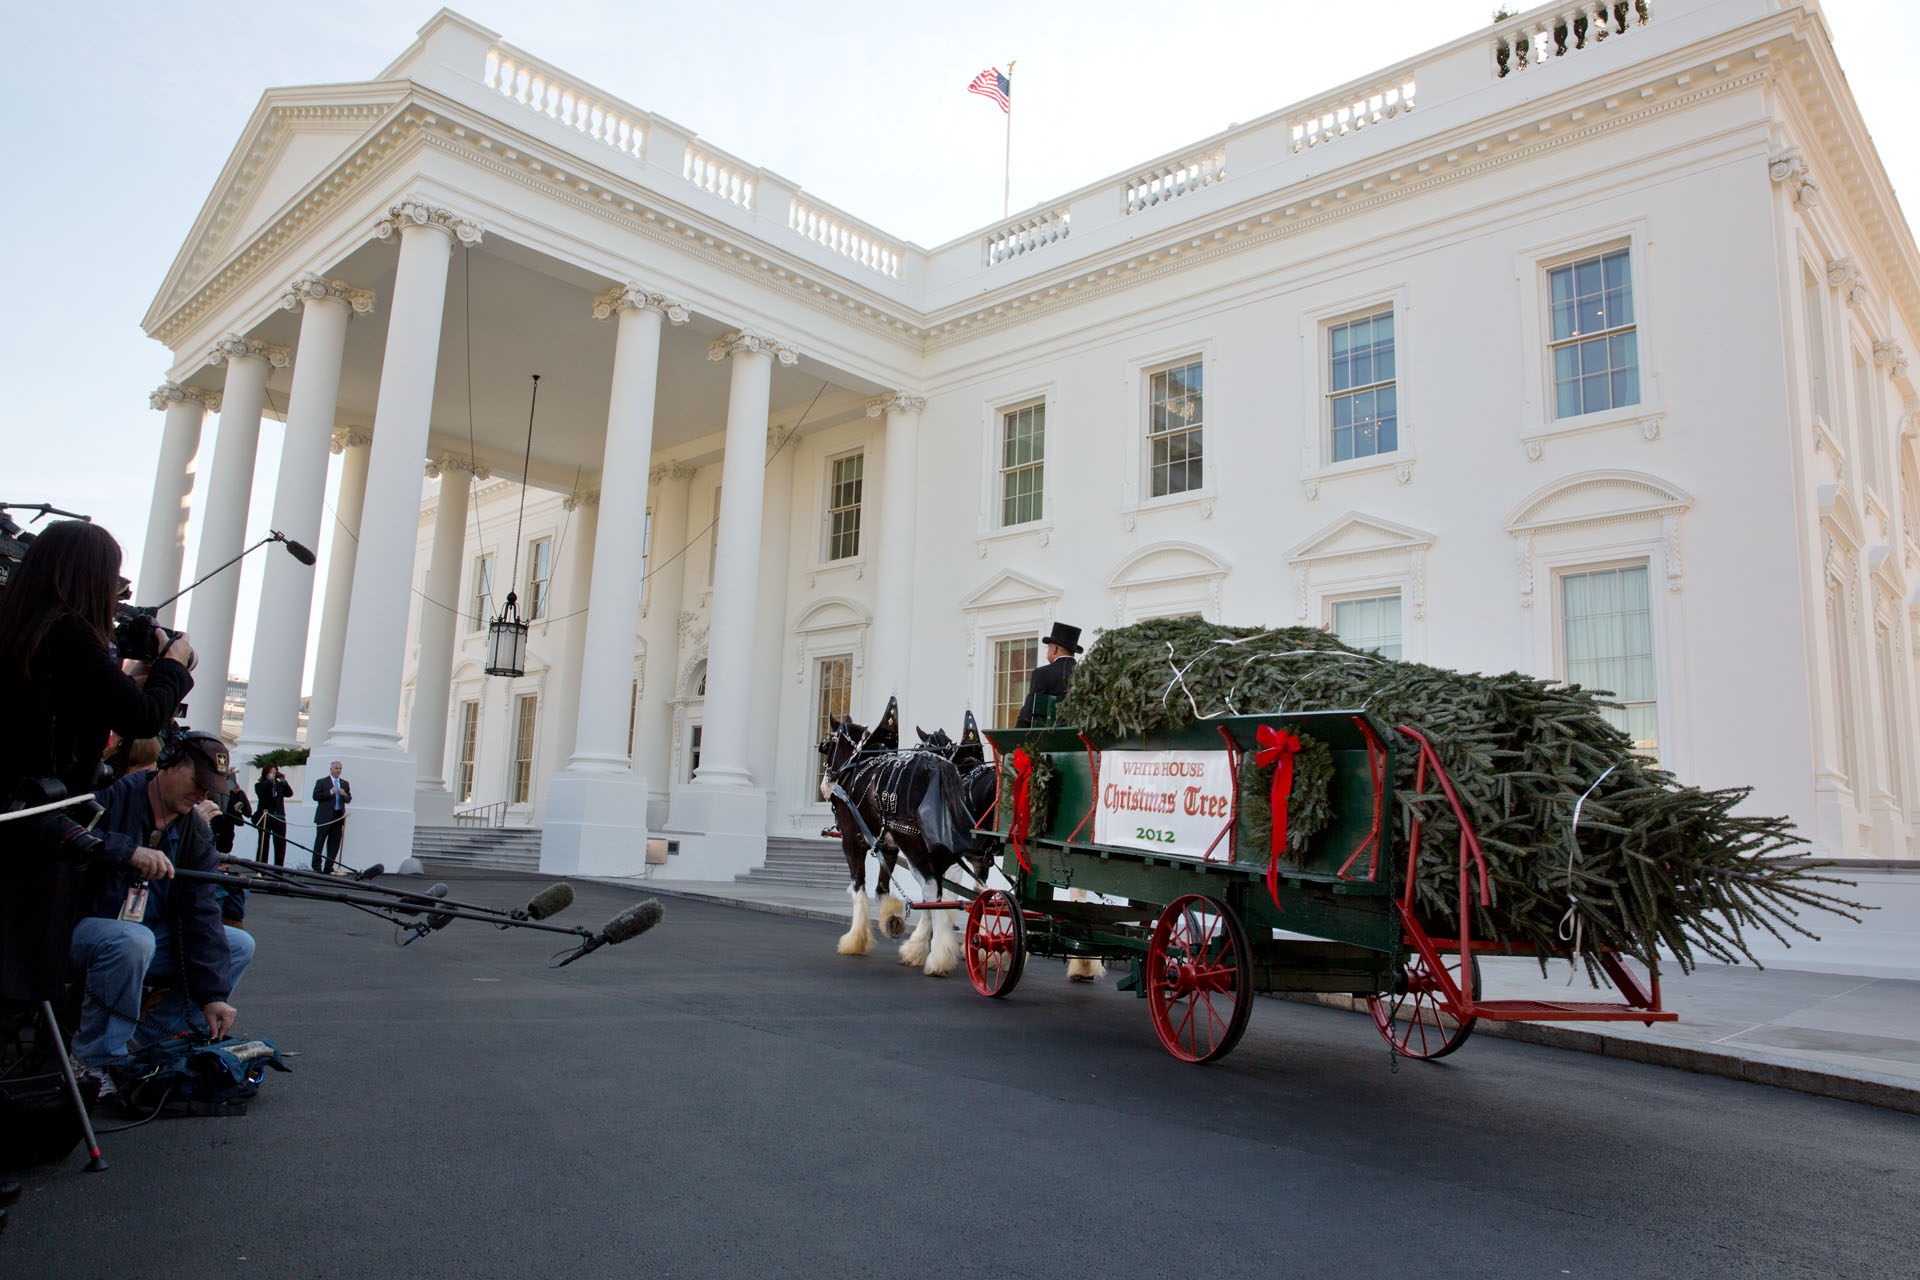 The official White House Christmas tree, a 19-foot Fraser fir, arrives in a horse-drawn carriage